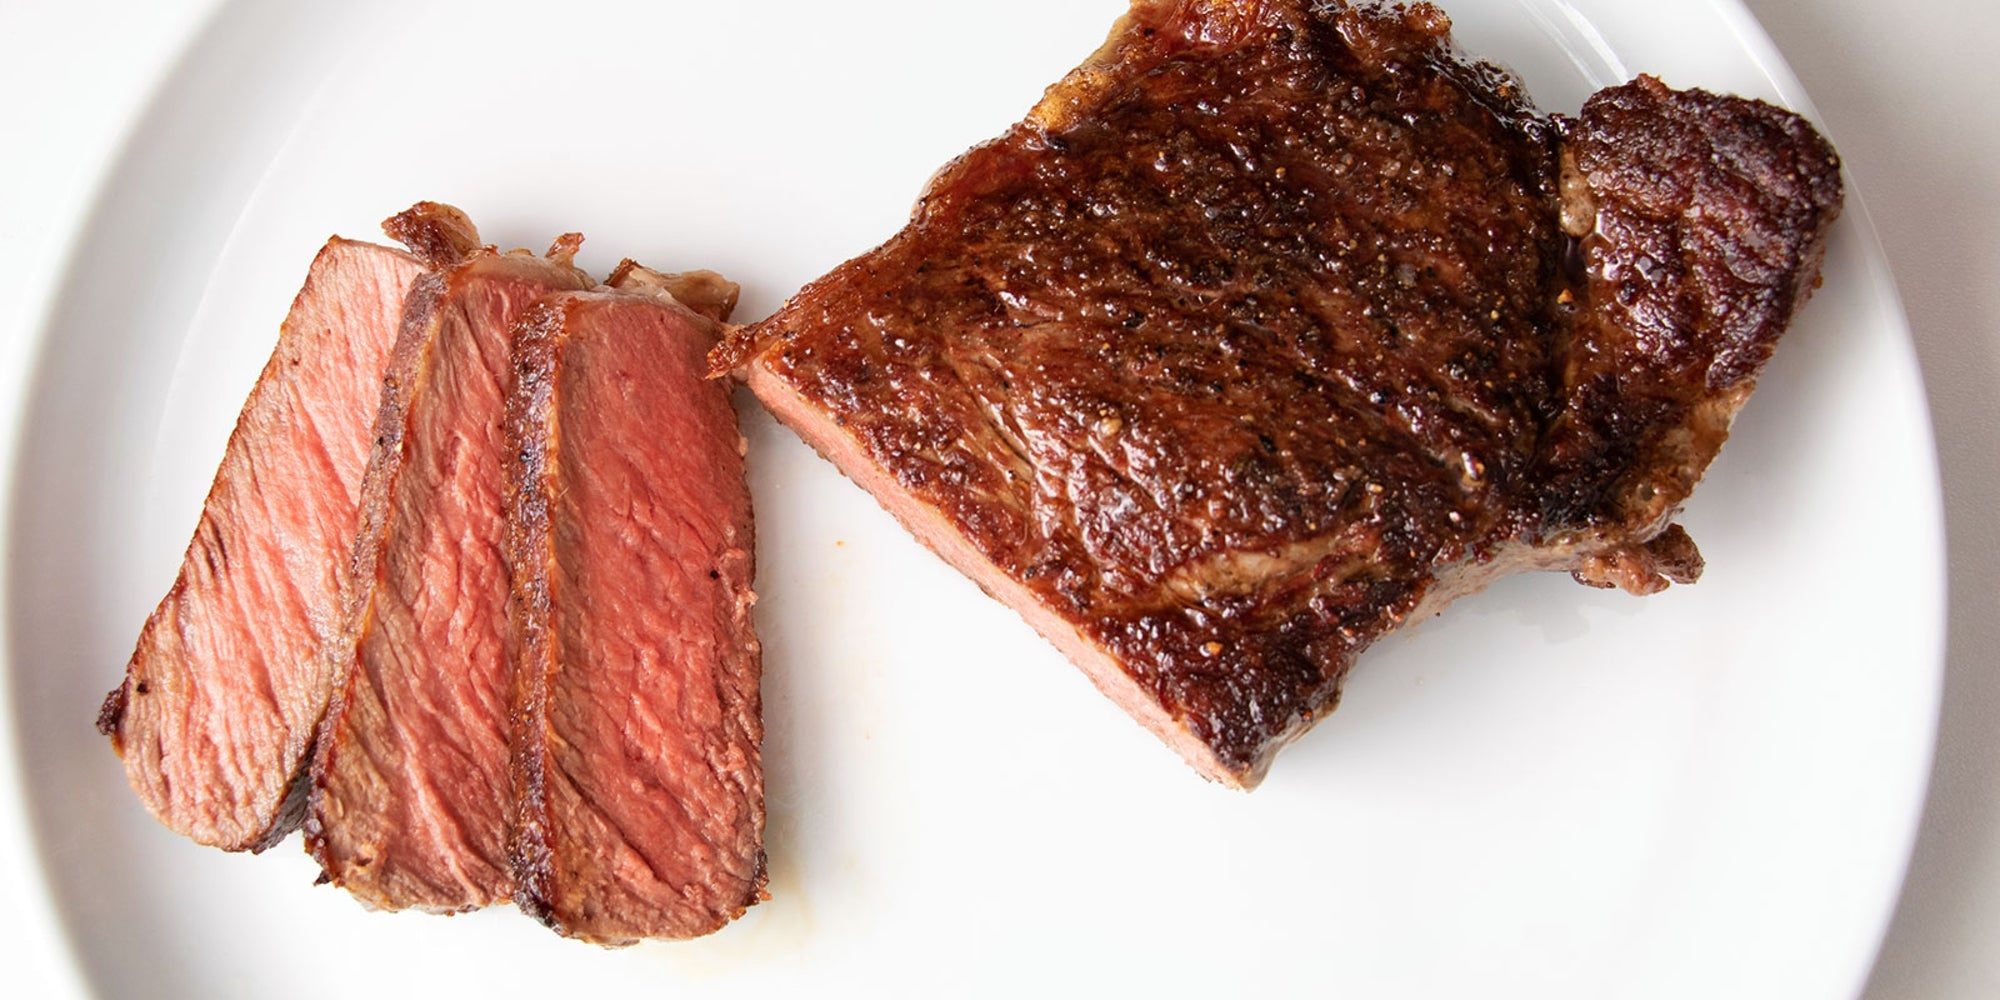 The Ultimate Guide to Pan-Seared Steak